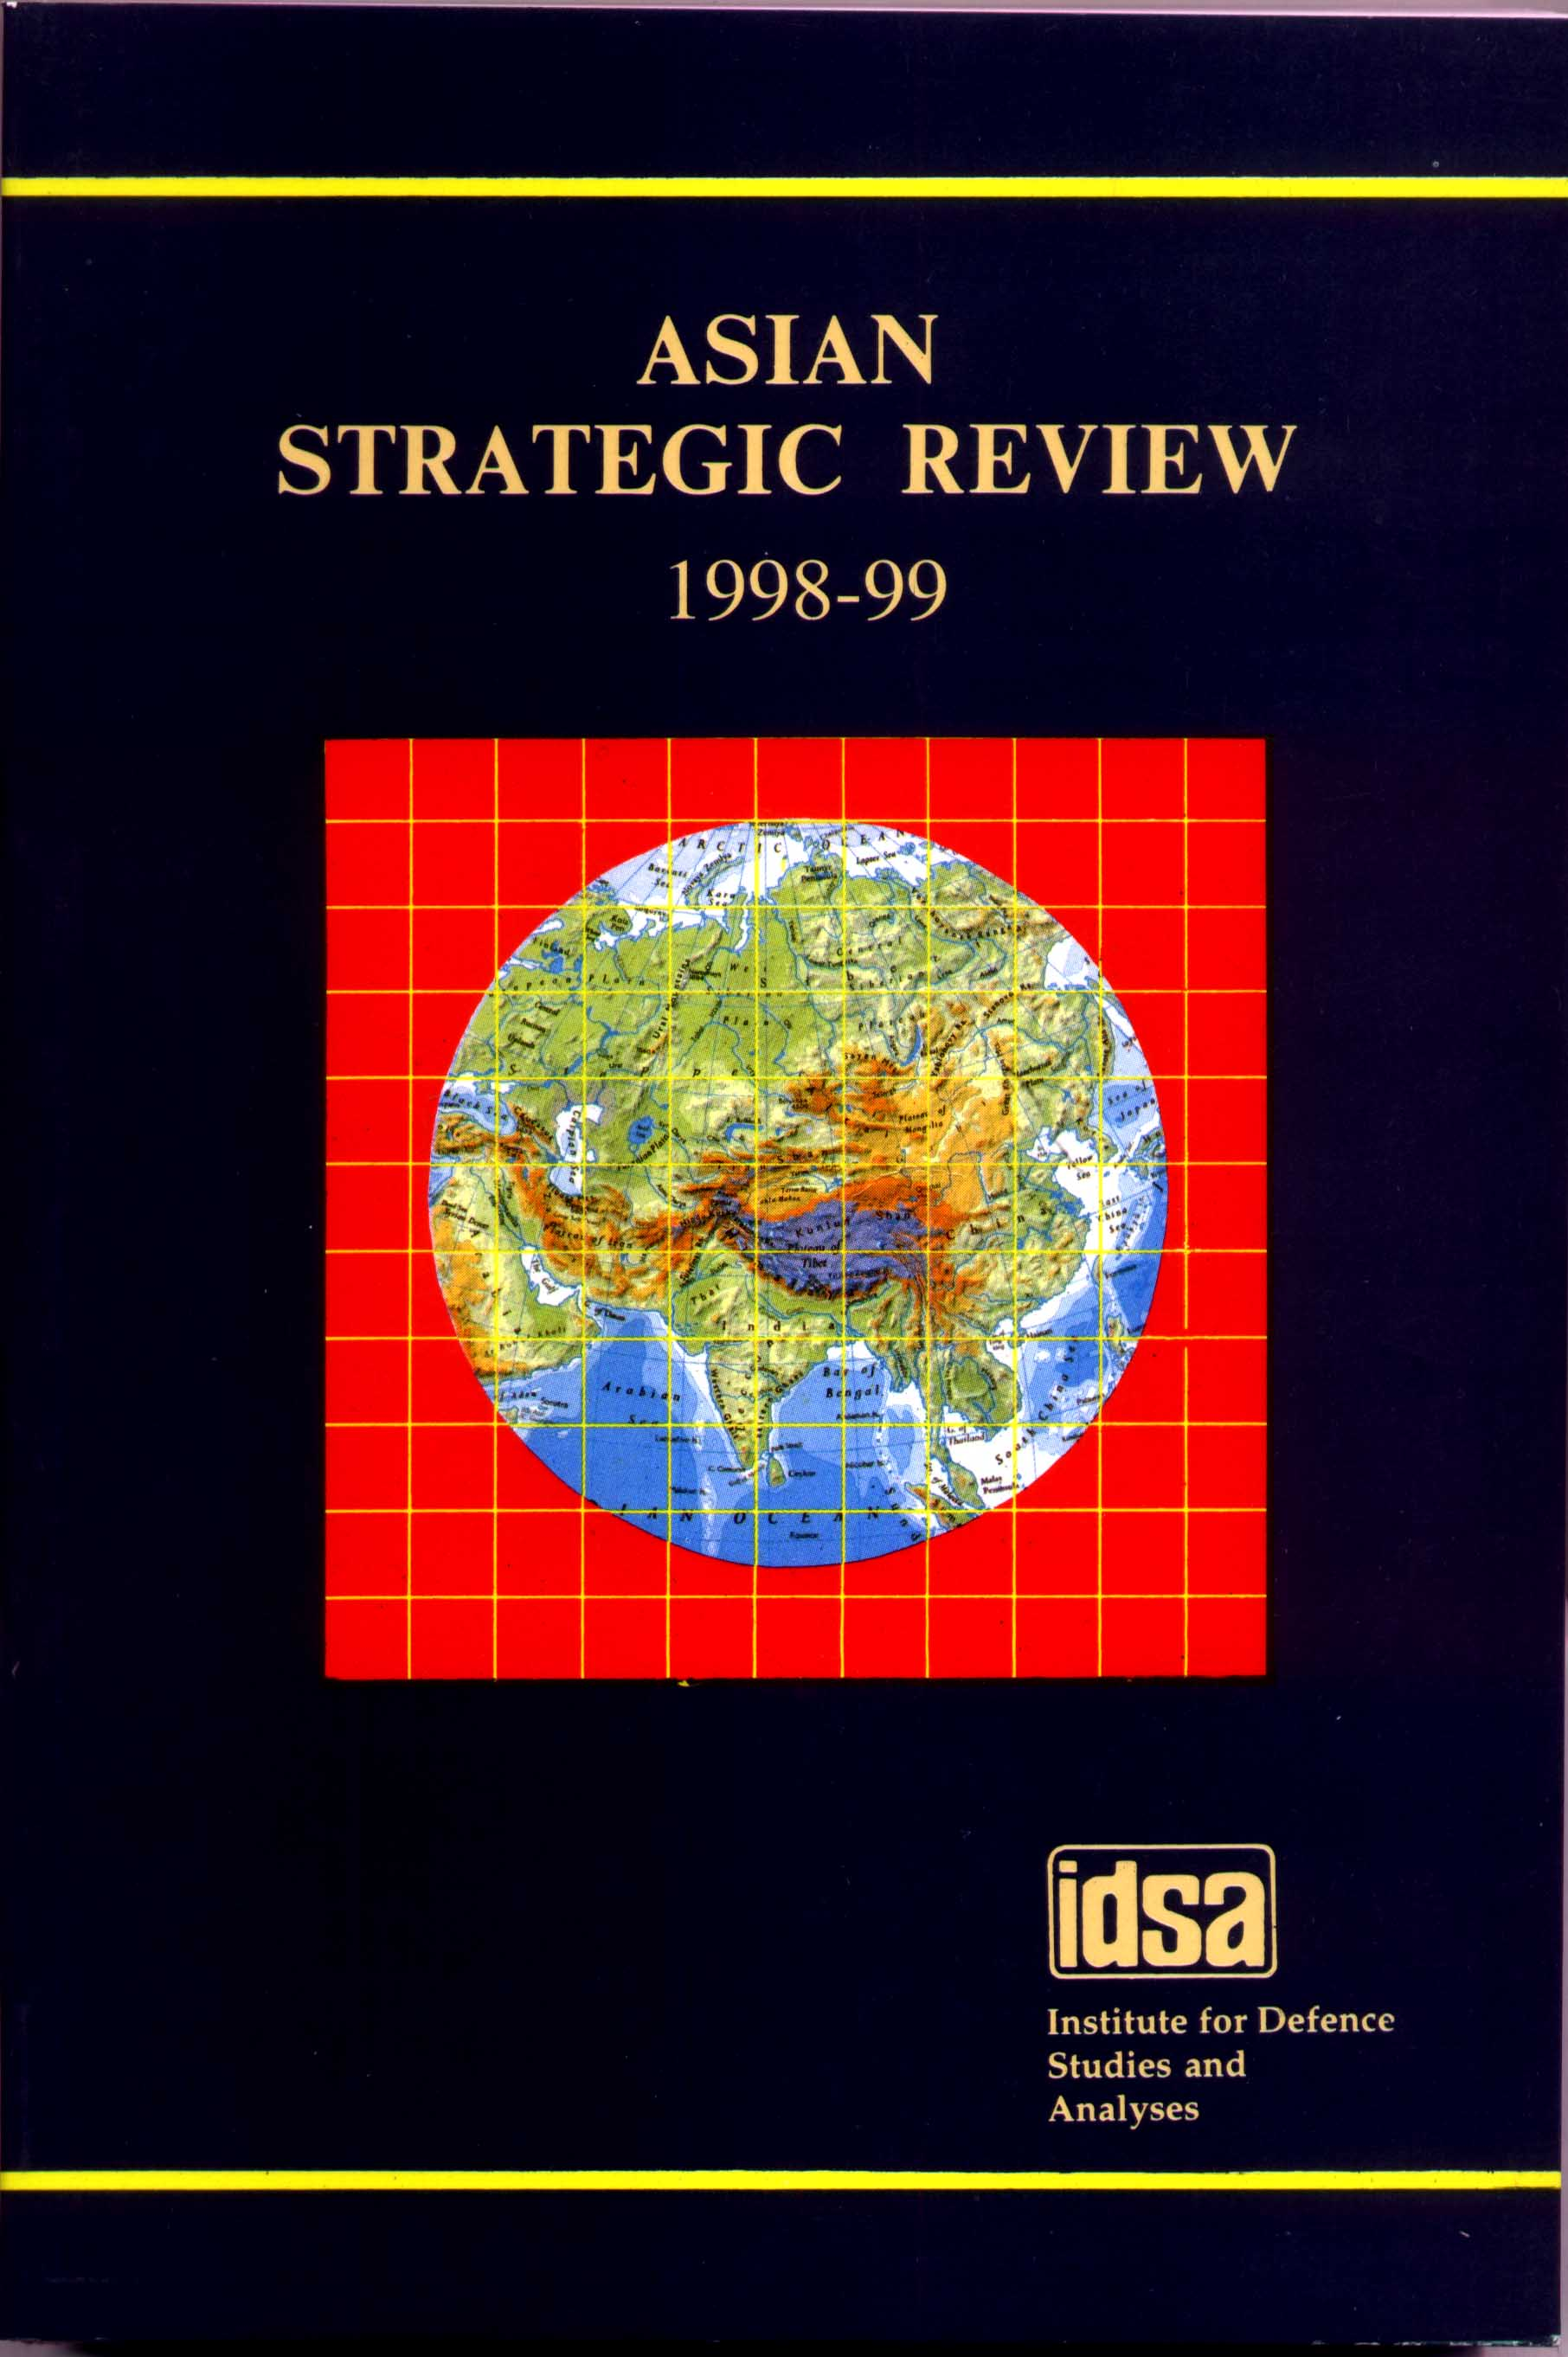 the cold war the balance of power strategic deterrence essay Abstract this publication includes: essay (1) the function and structure of nuclear deterrence in the post-cold war world essay (2) more for less-an arms control strategy for the 1990s.